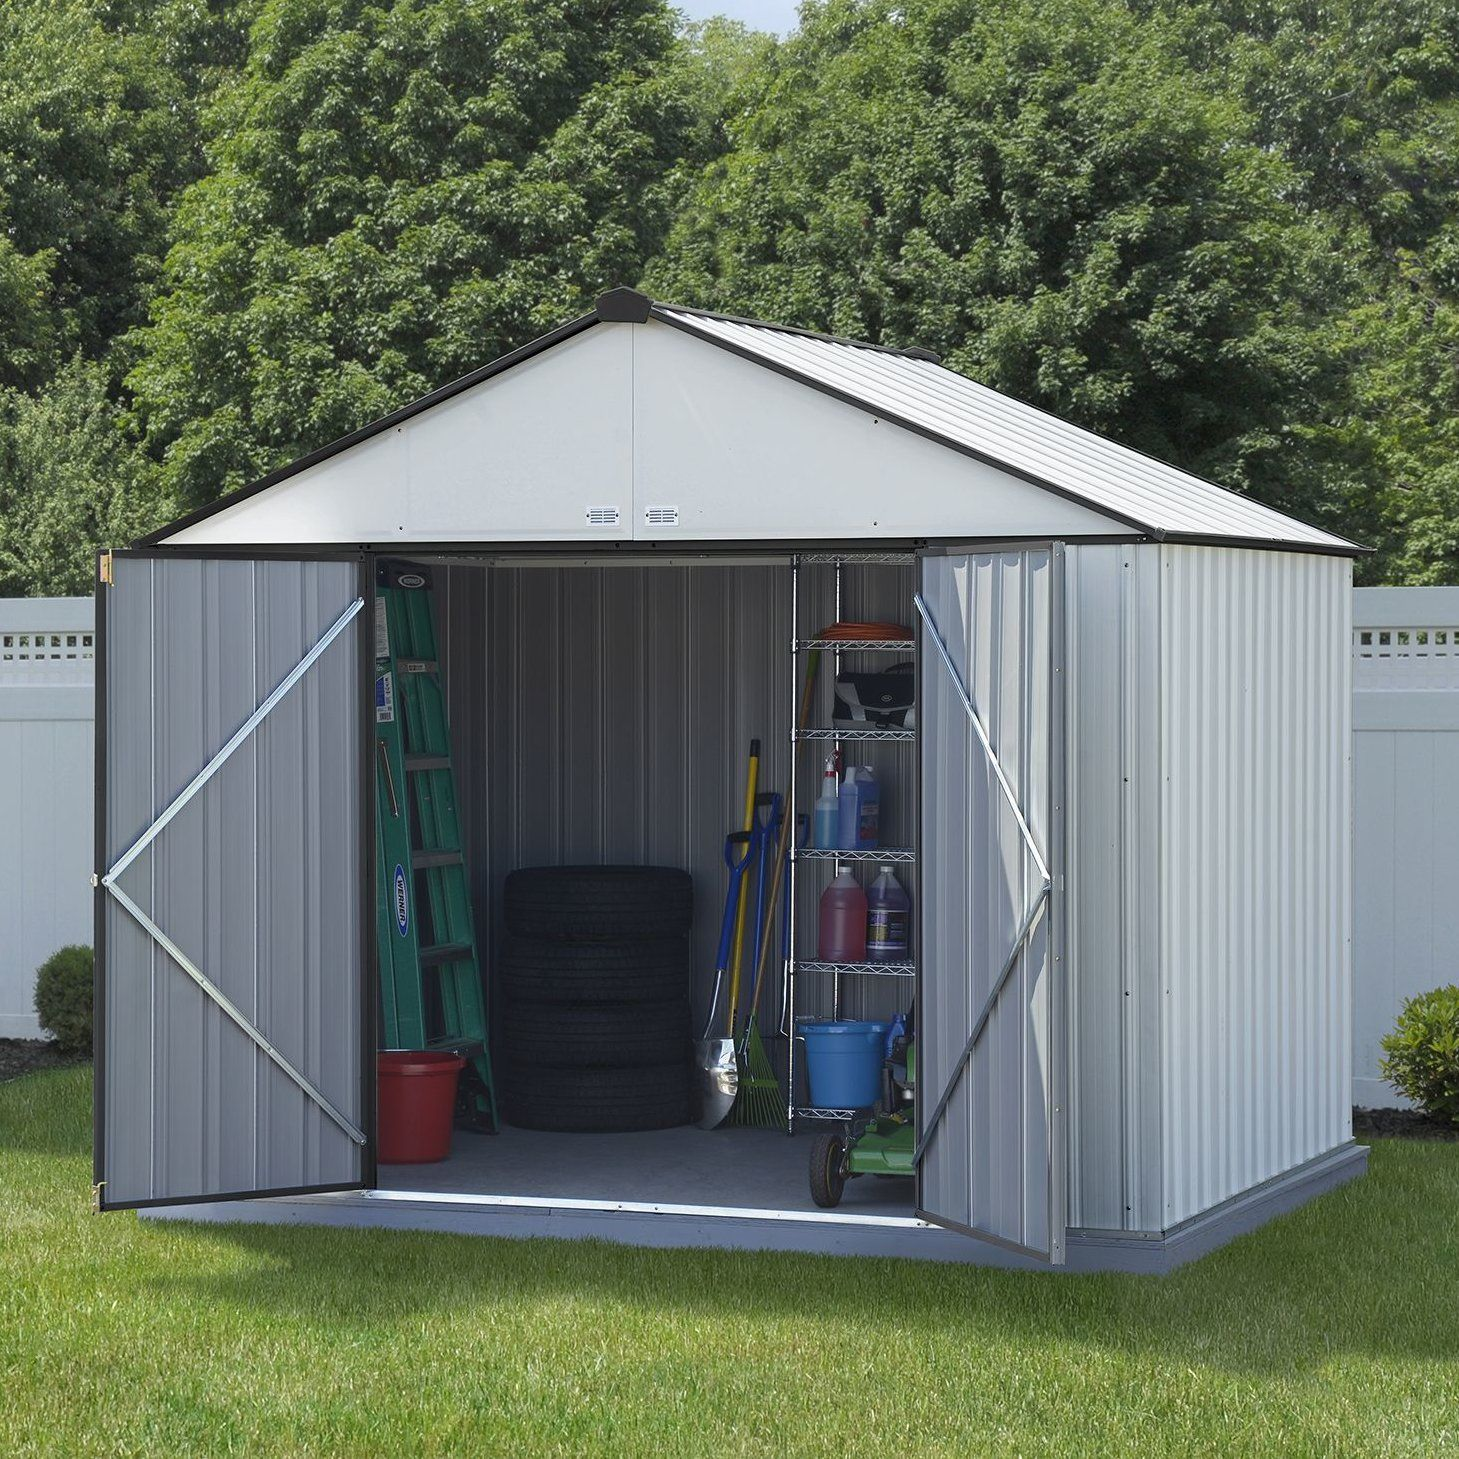 Ezee Shed 10 Ft W X 8 Ft D Metal Storage Shed Wood Shed Plans Building A Shed Metal Storage Sheds